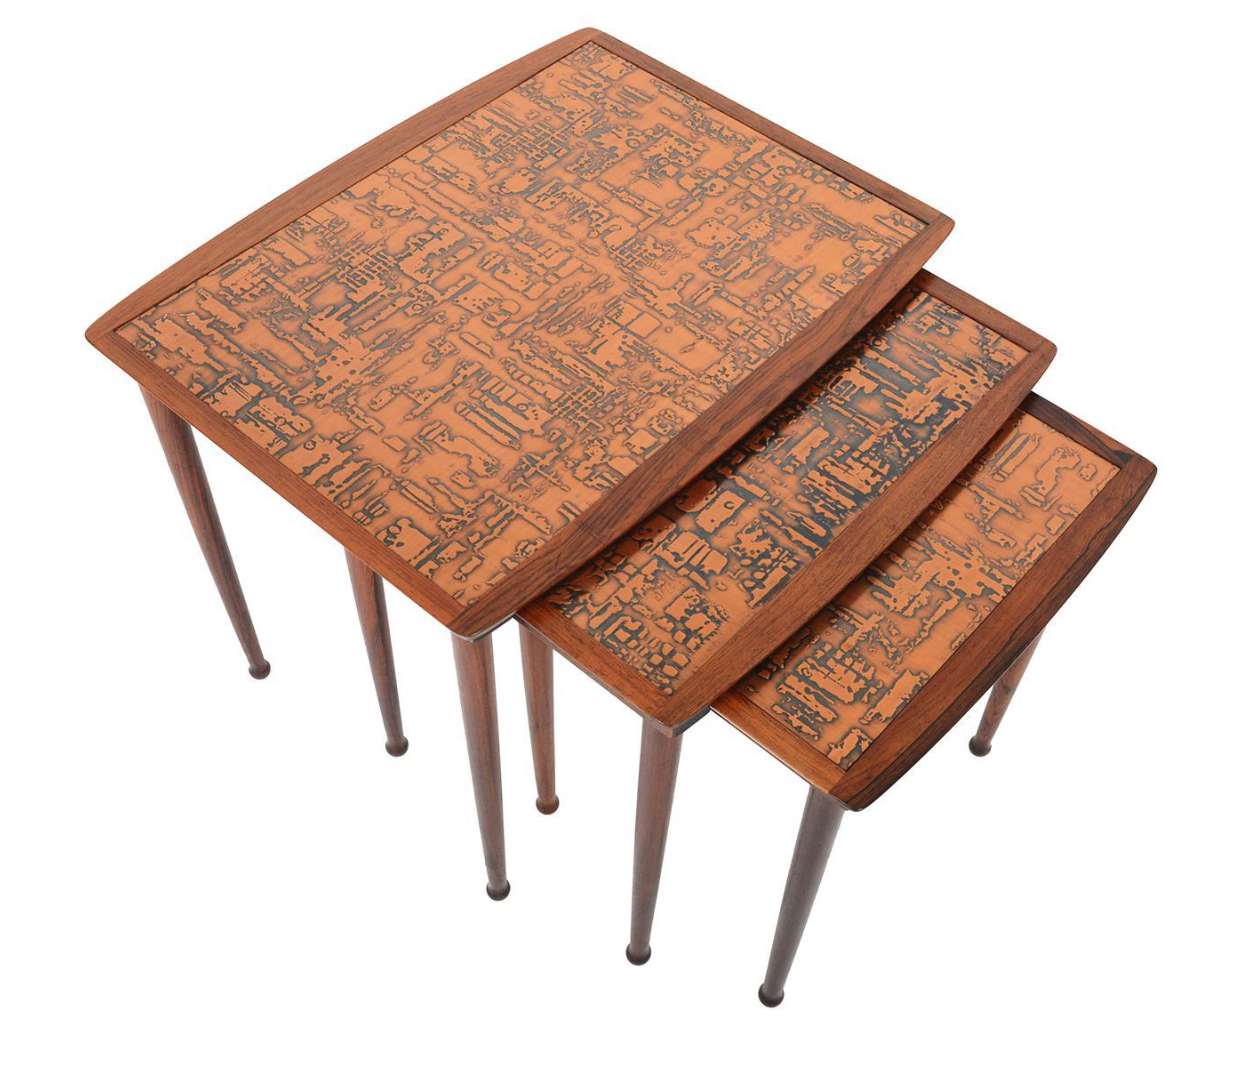 Møbel intarsia rosewood copper model 22 nesting tables s 3 chairish